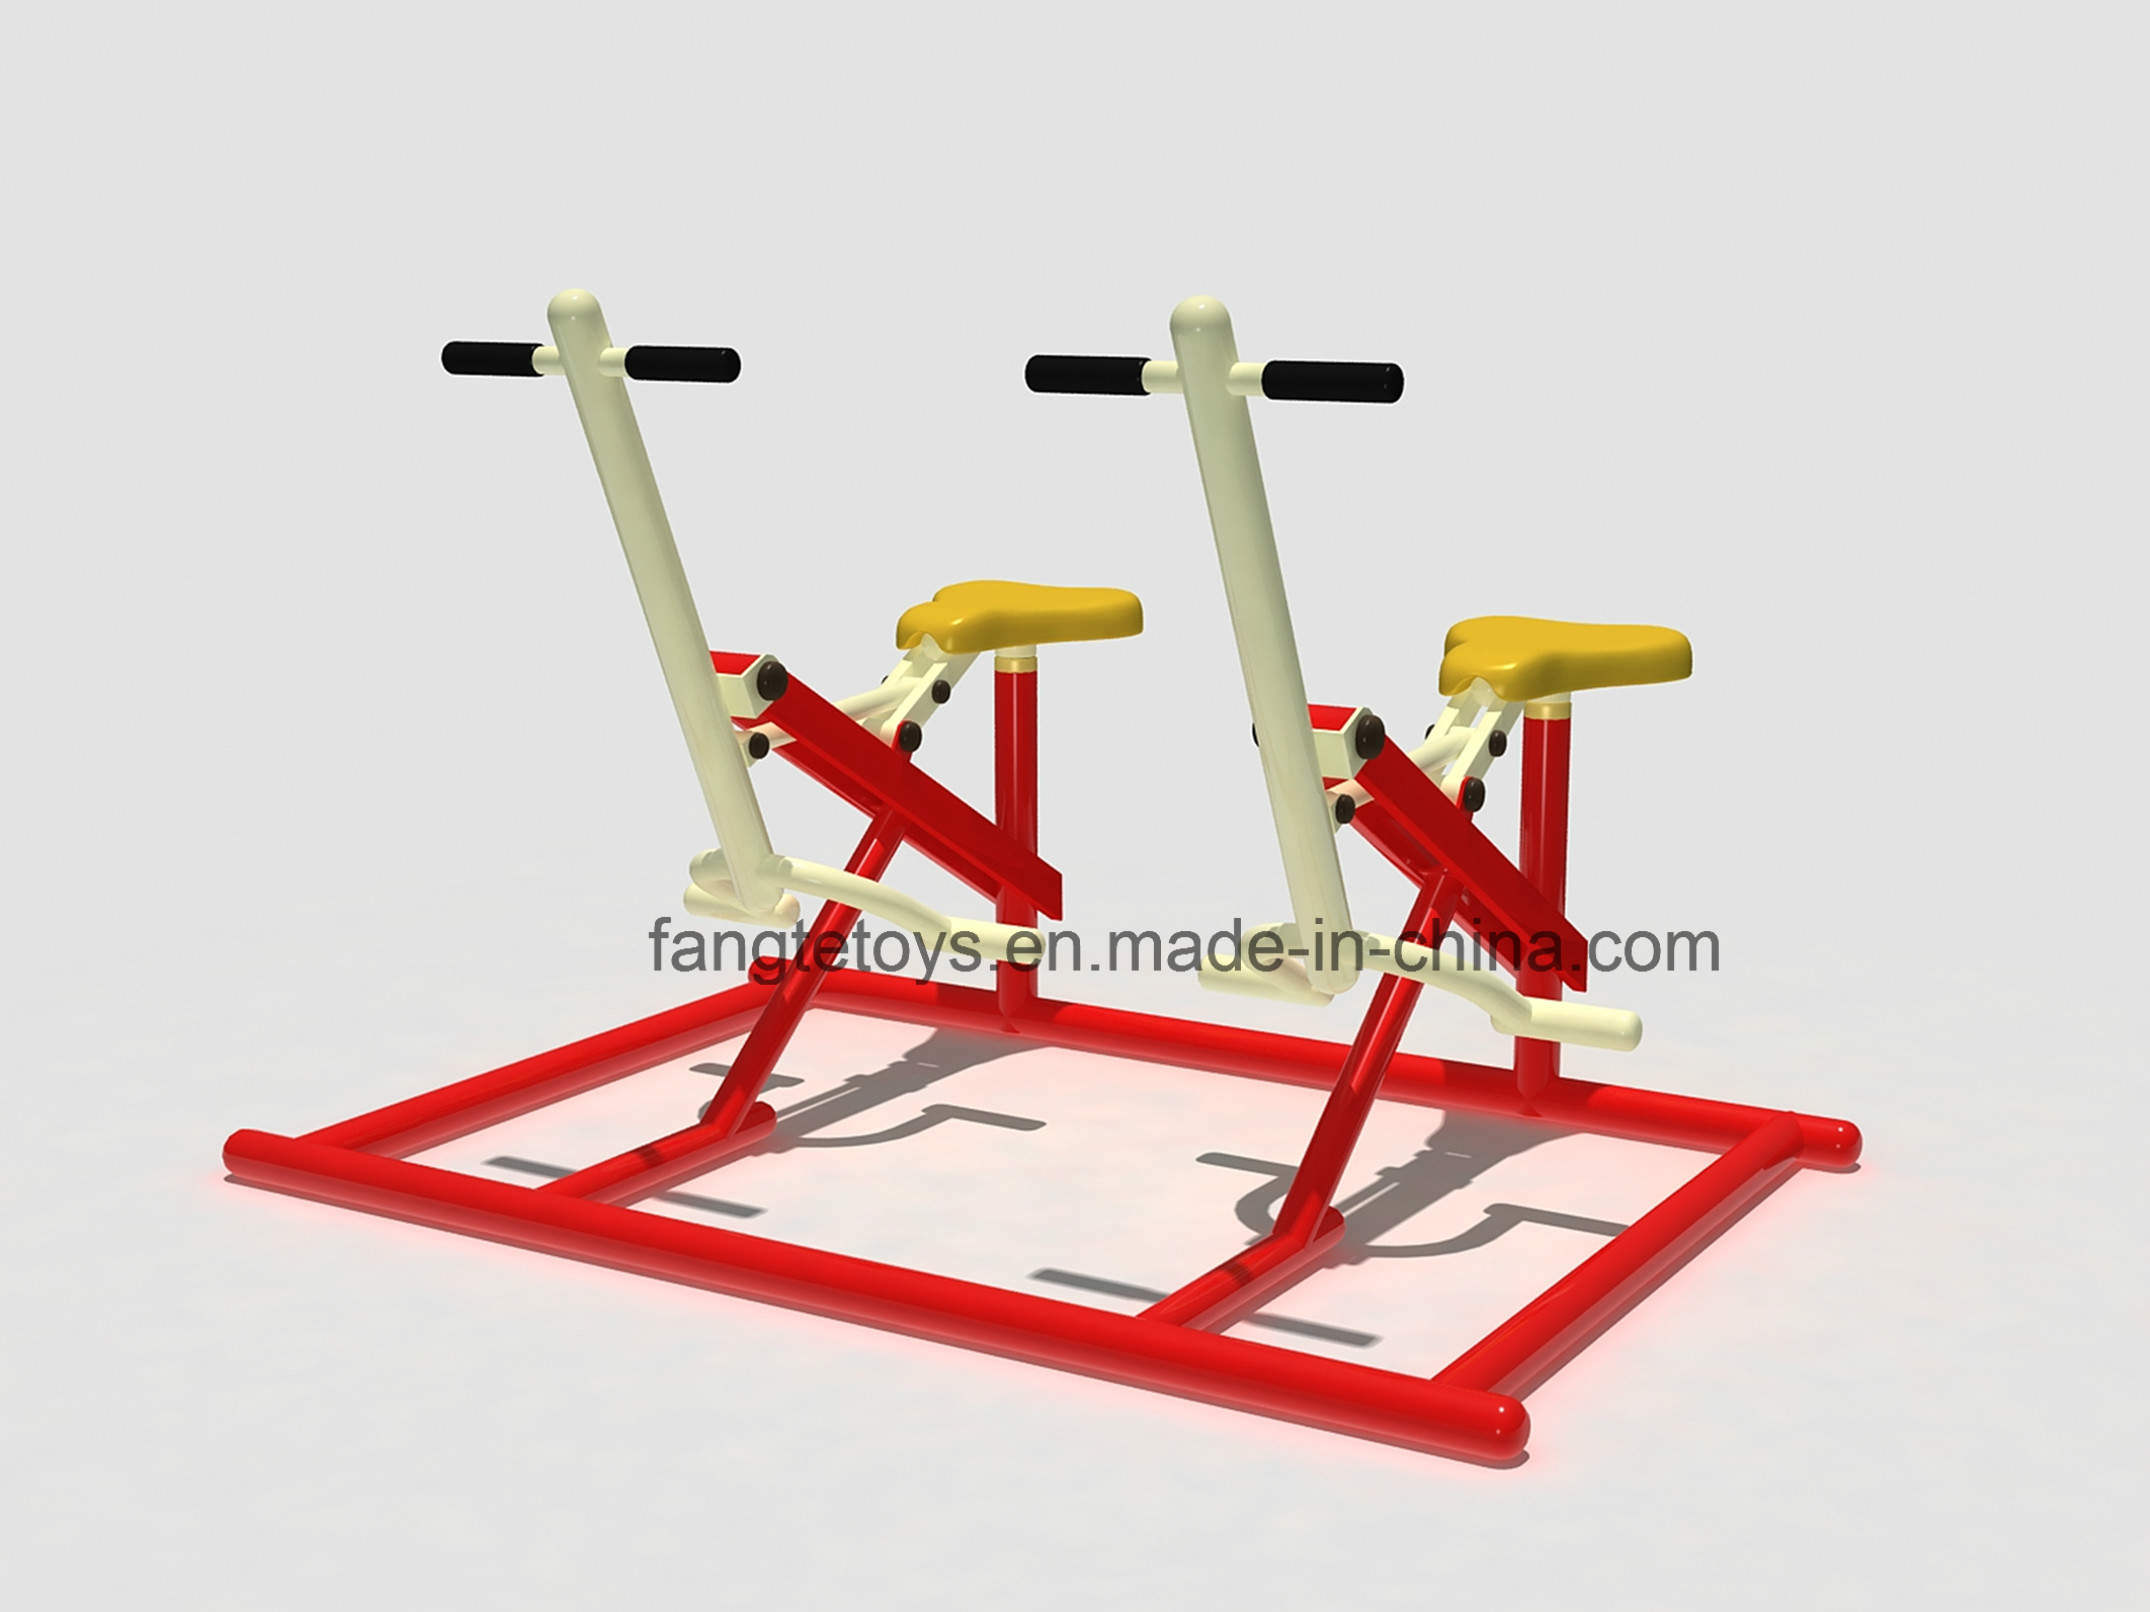 Outdoor Fitness Equipment Double Units Bonny Rider FT-Of343